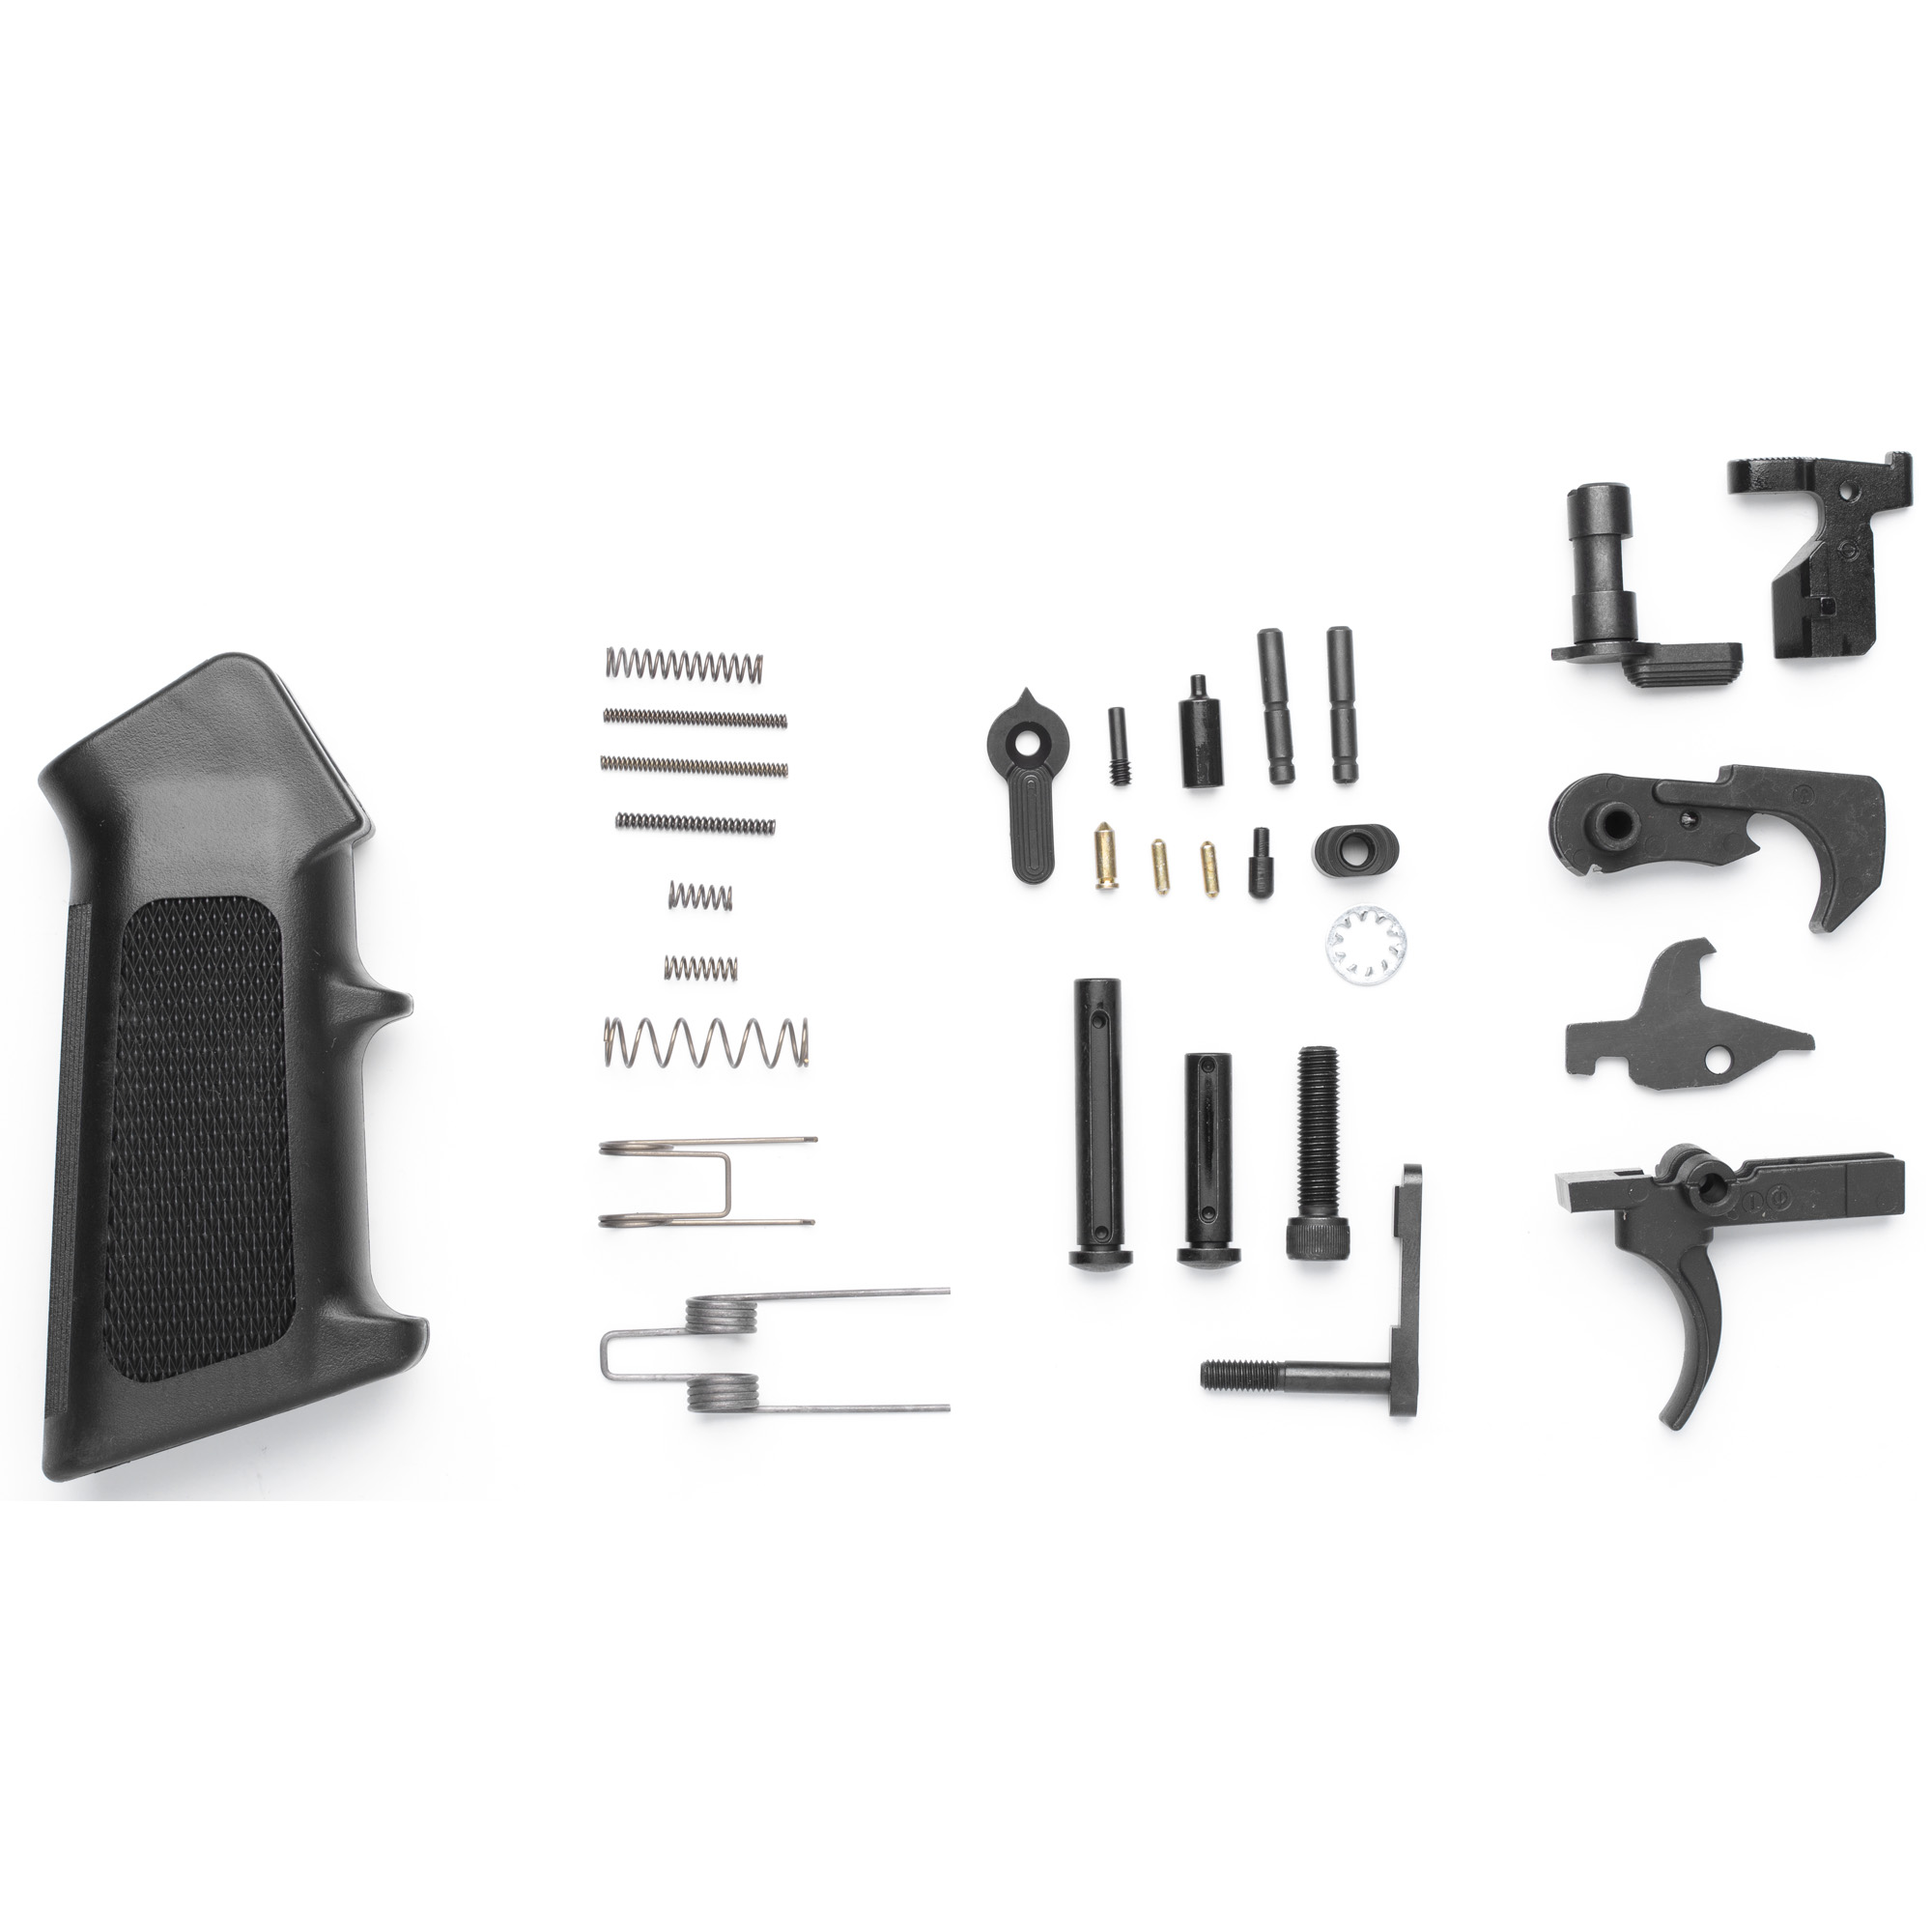 All the parts you need to get started on your next Mk3 build. Combine this kit with a buttstock kit to complete your lower group. Includes a CMMG Ambi Selector. Compatible with CMMG Mk3 Lowers and most LR308 type lowers.